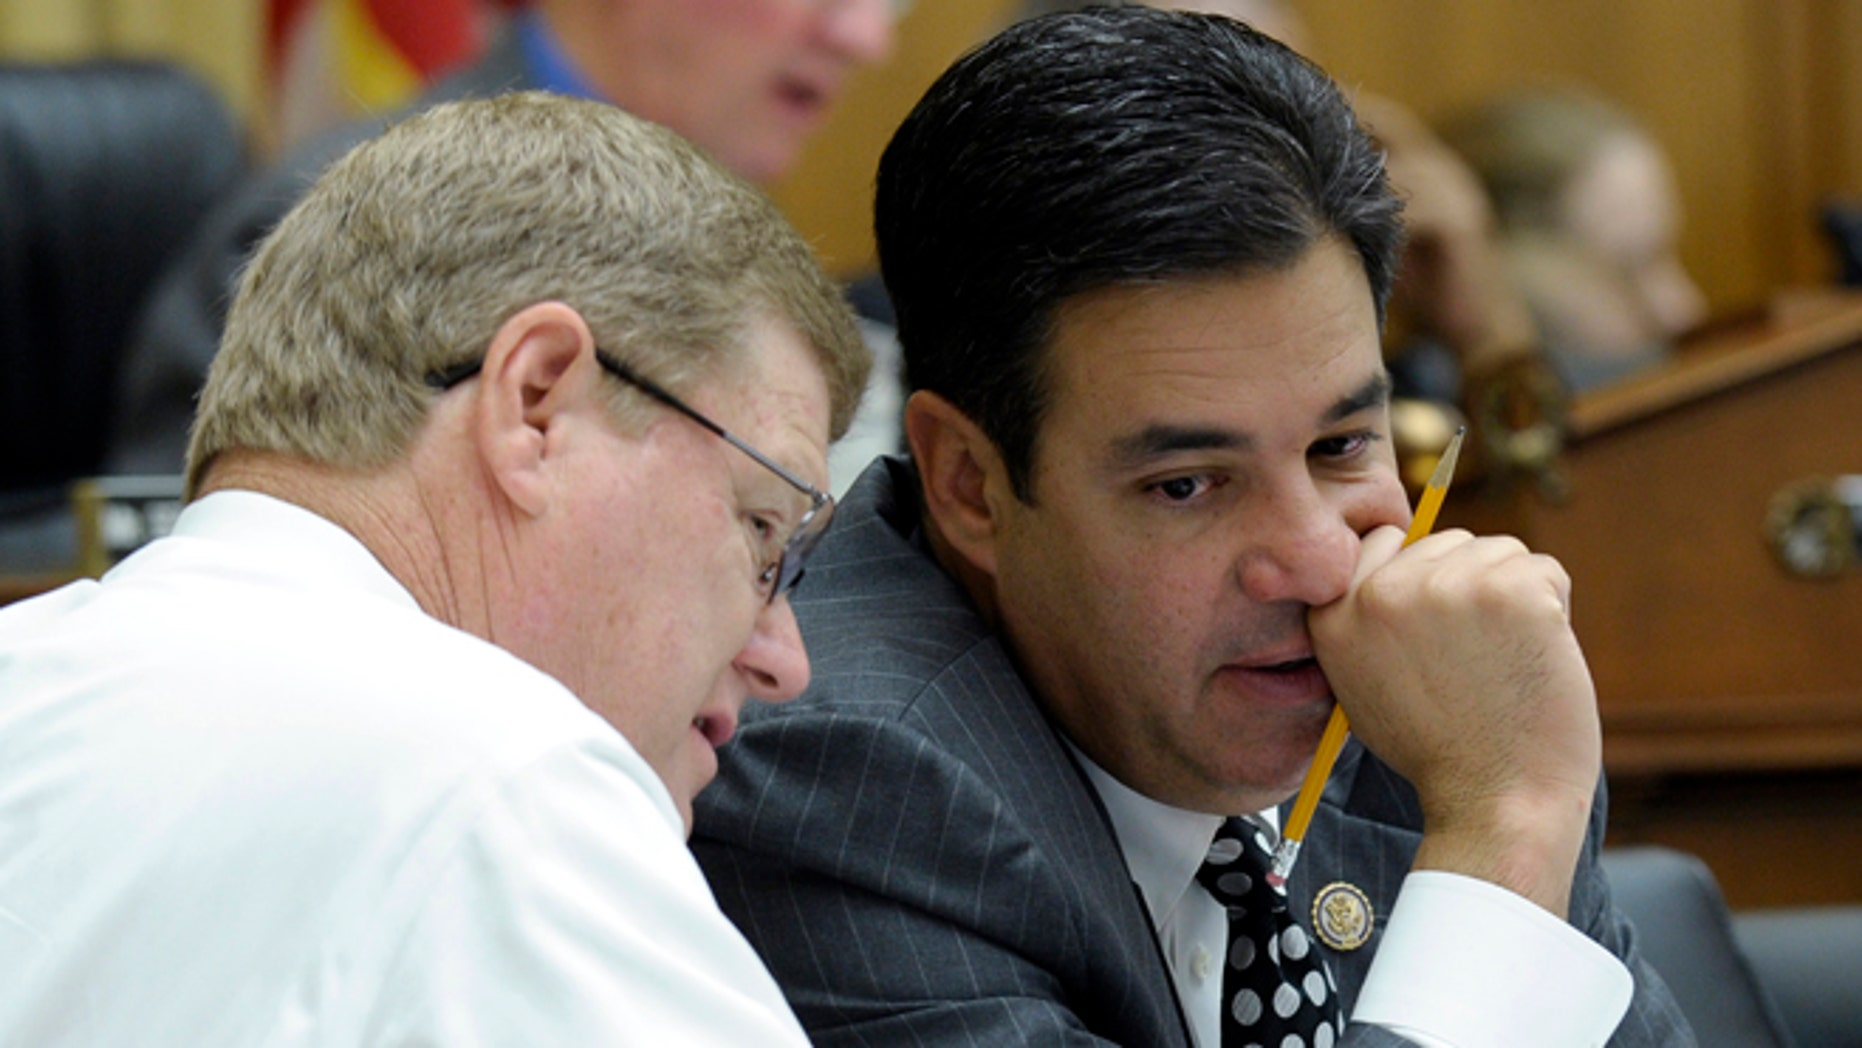 Rep. Raul Labrador, R-Idaho, right, and Rep. Mark Amodei, R-Nev., in a May 22, 2013 file photo.